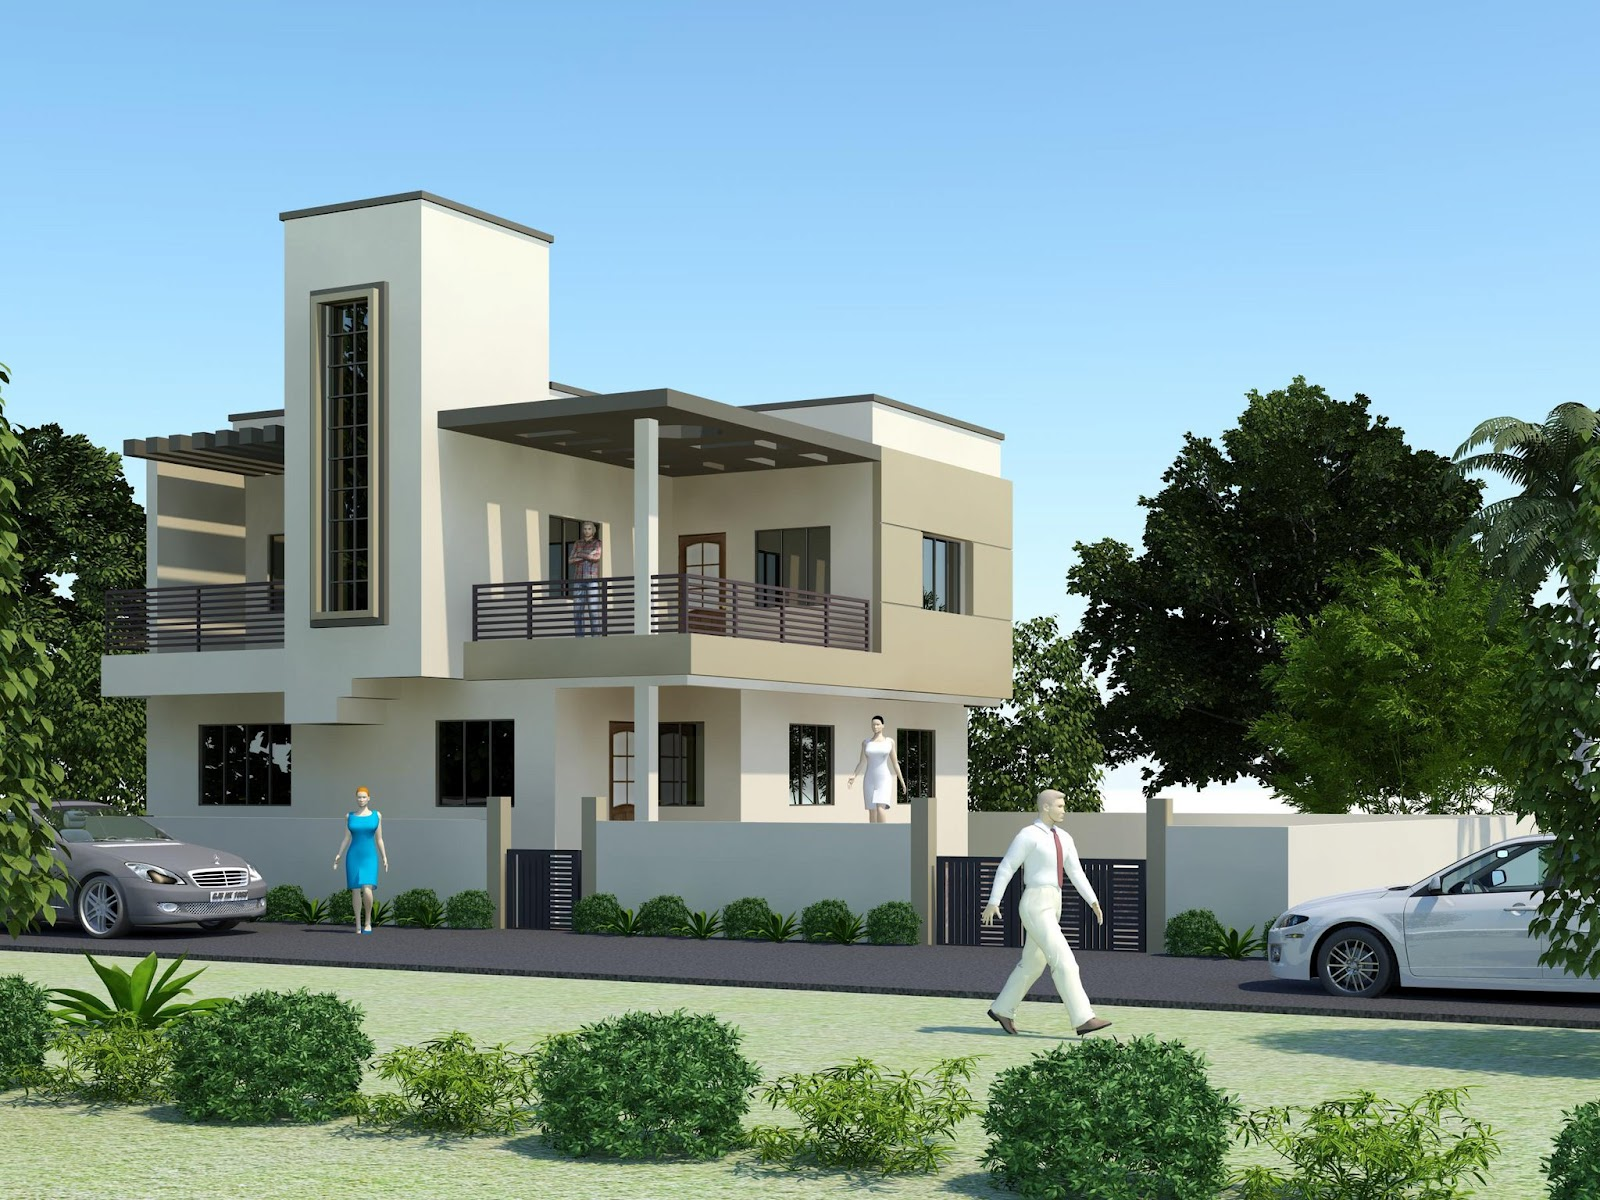 New home designs latest modern homes exterior designs for New homes design pakistan